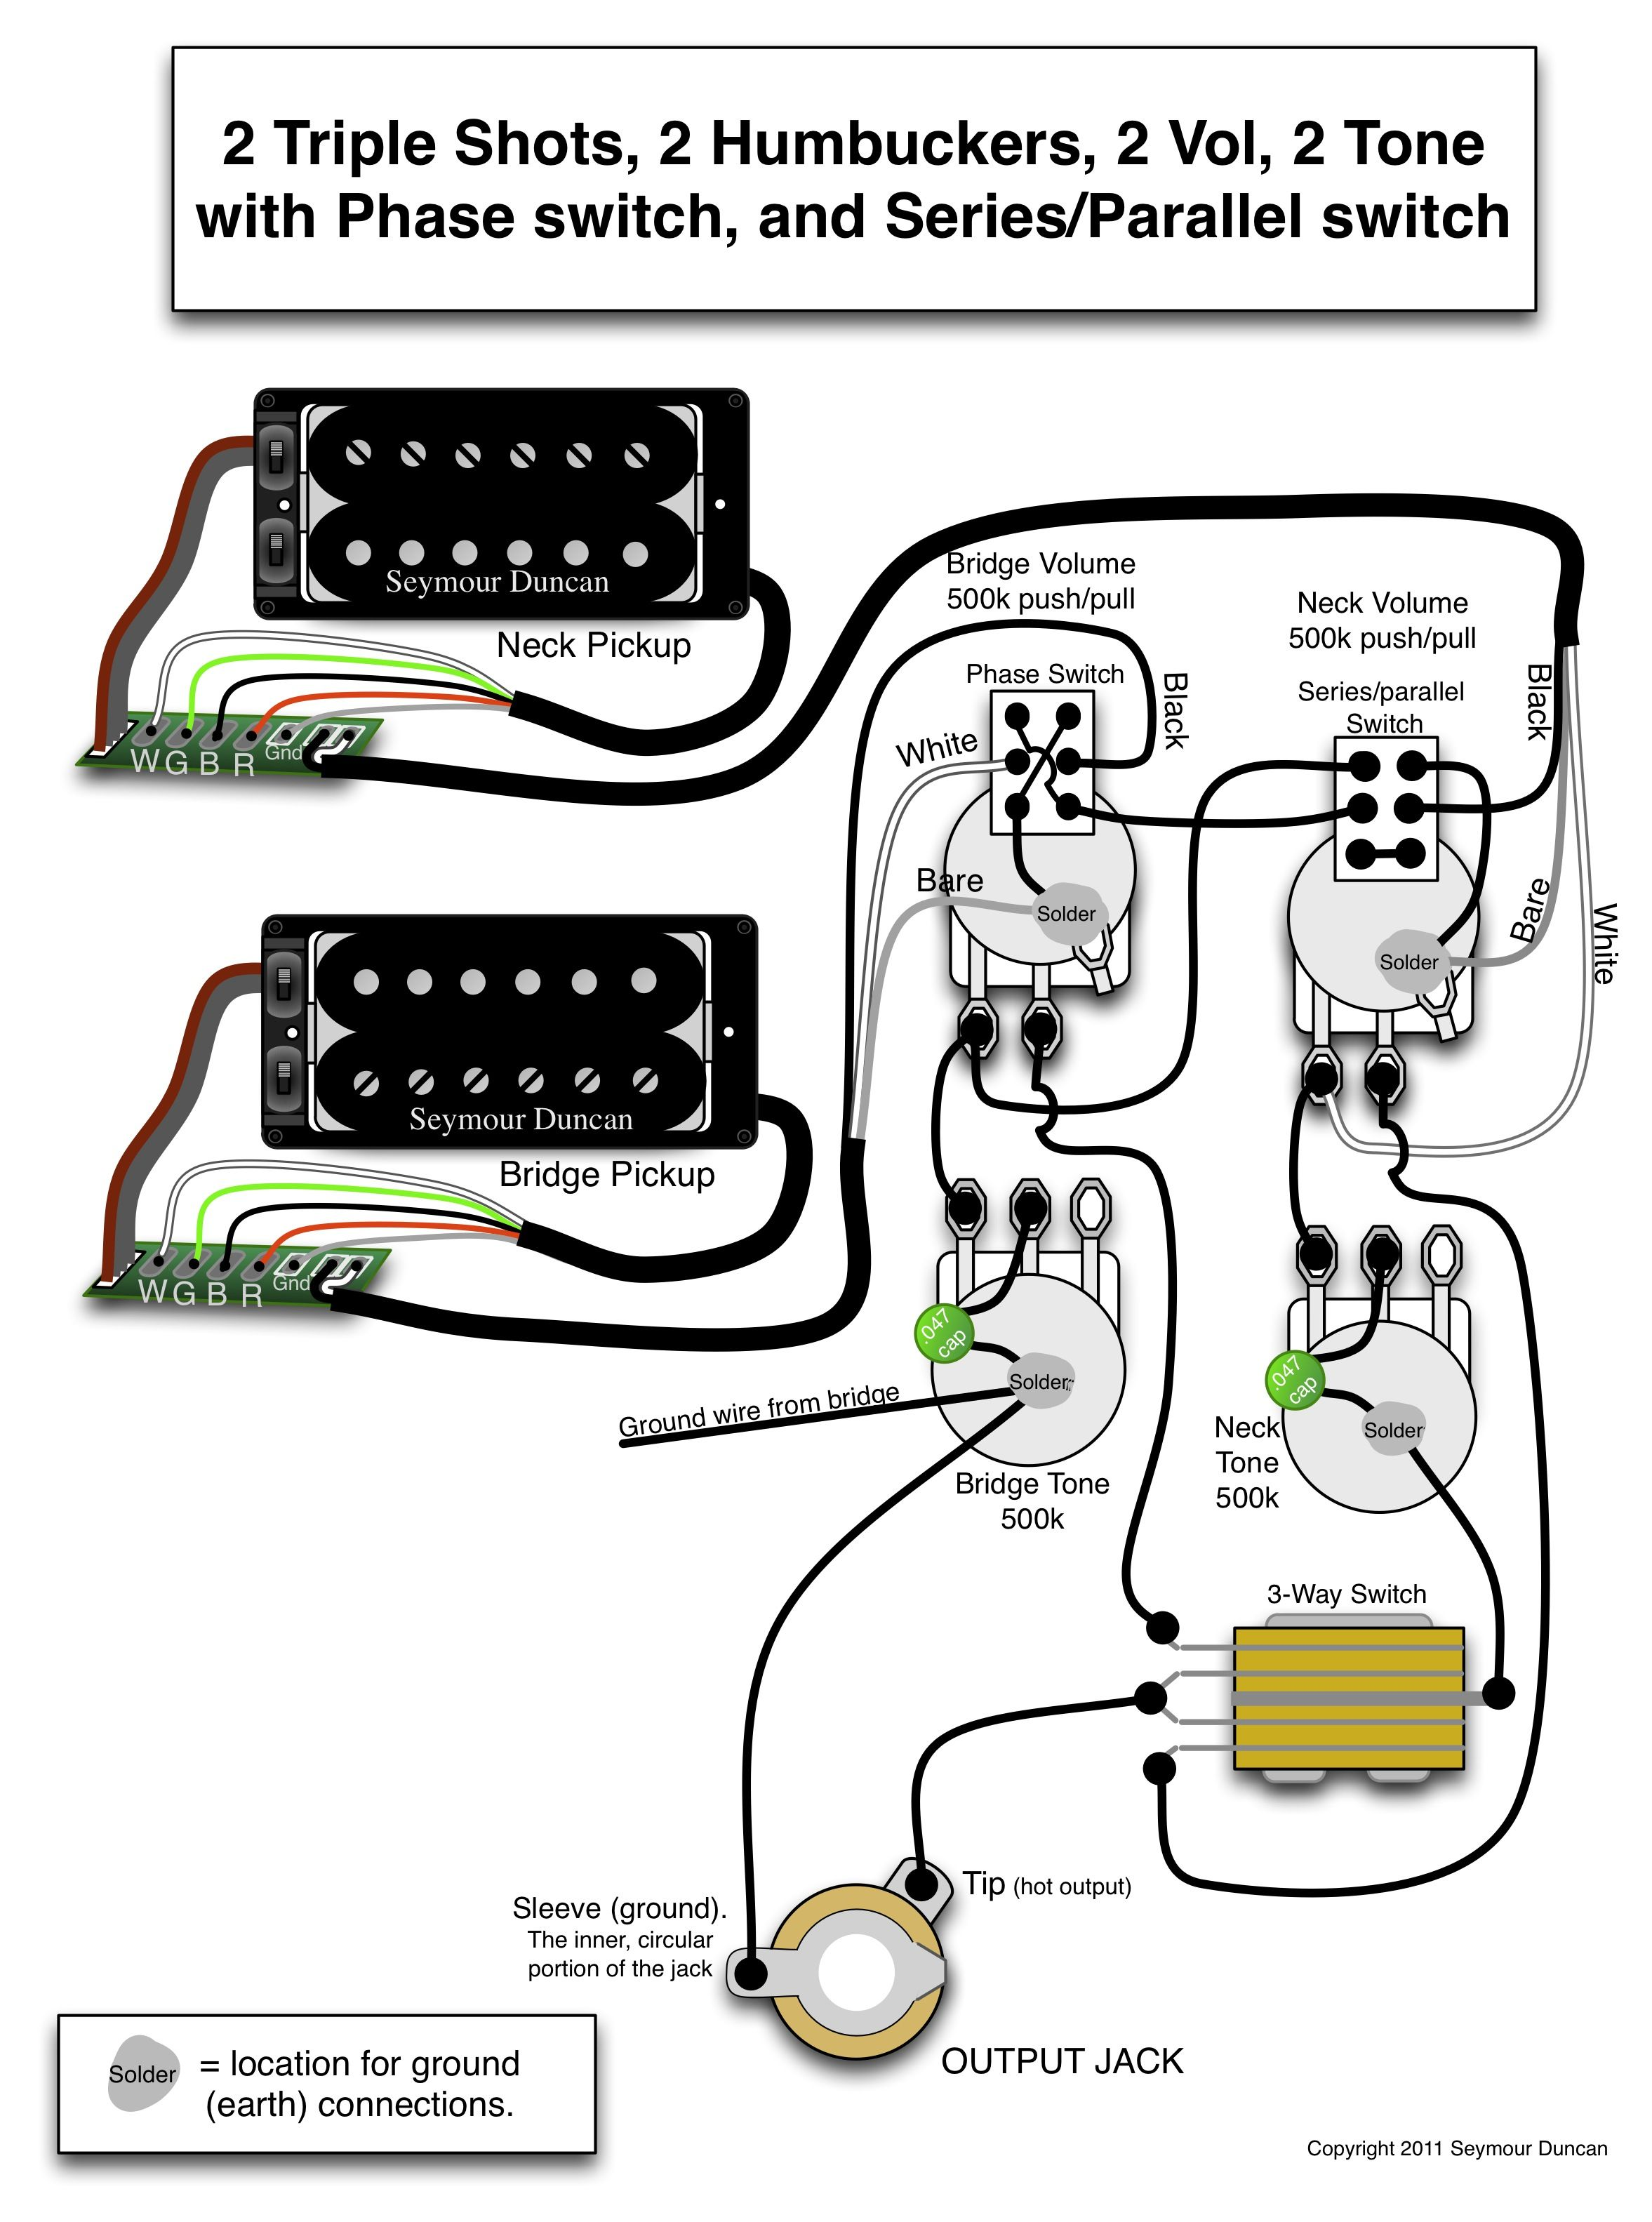 medium resolution of seymour duncan wiring diagram 2 triple shots 2 humbuckers 2 vol humbucker pickup wiring diagram fender triple coil pickup wiring